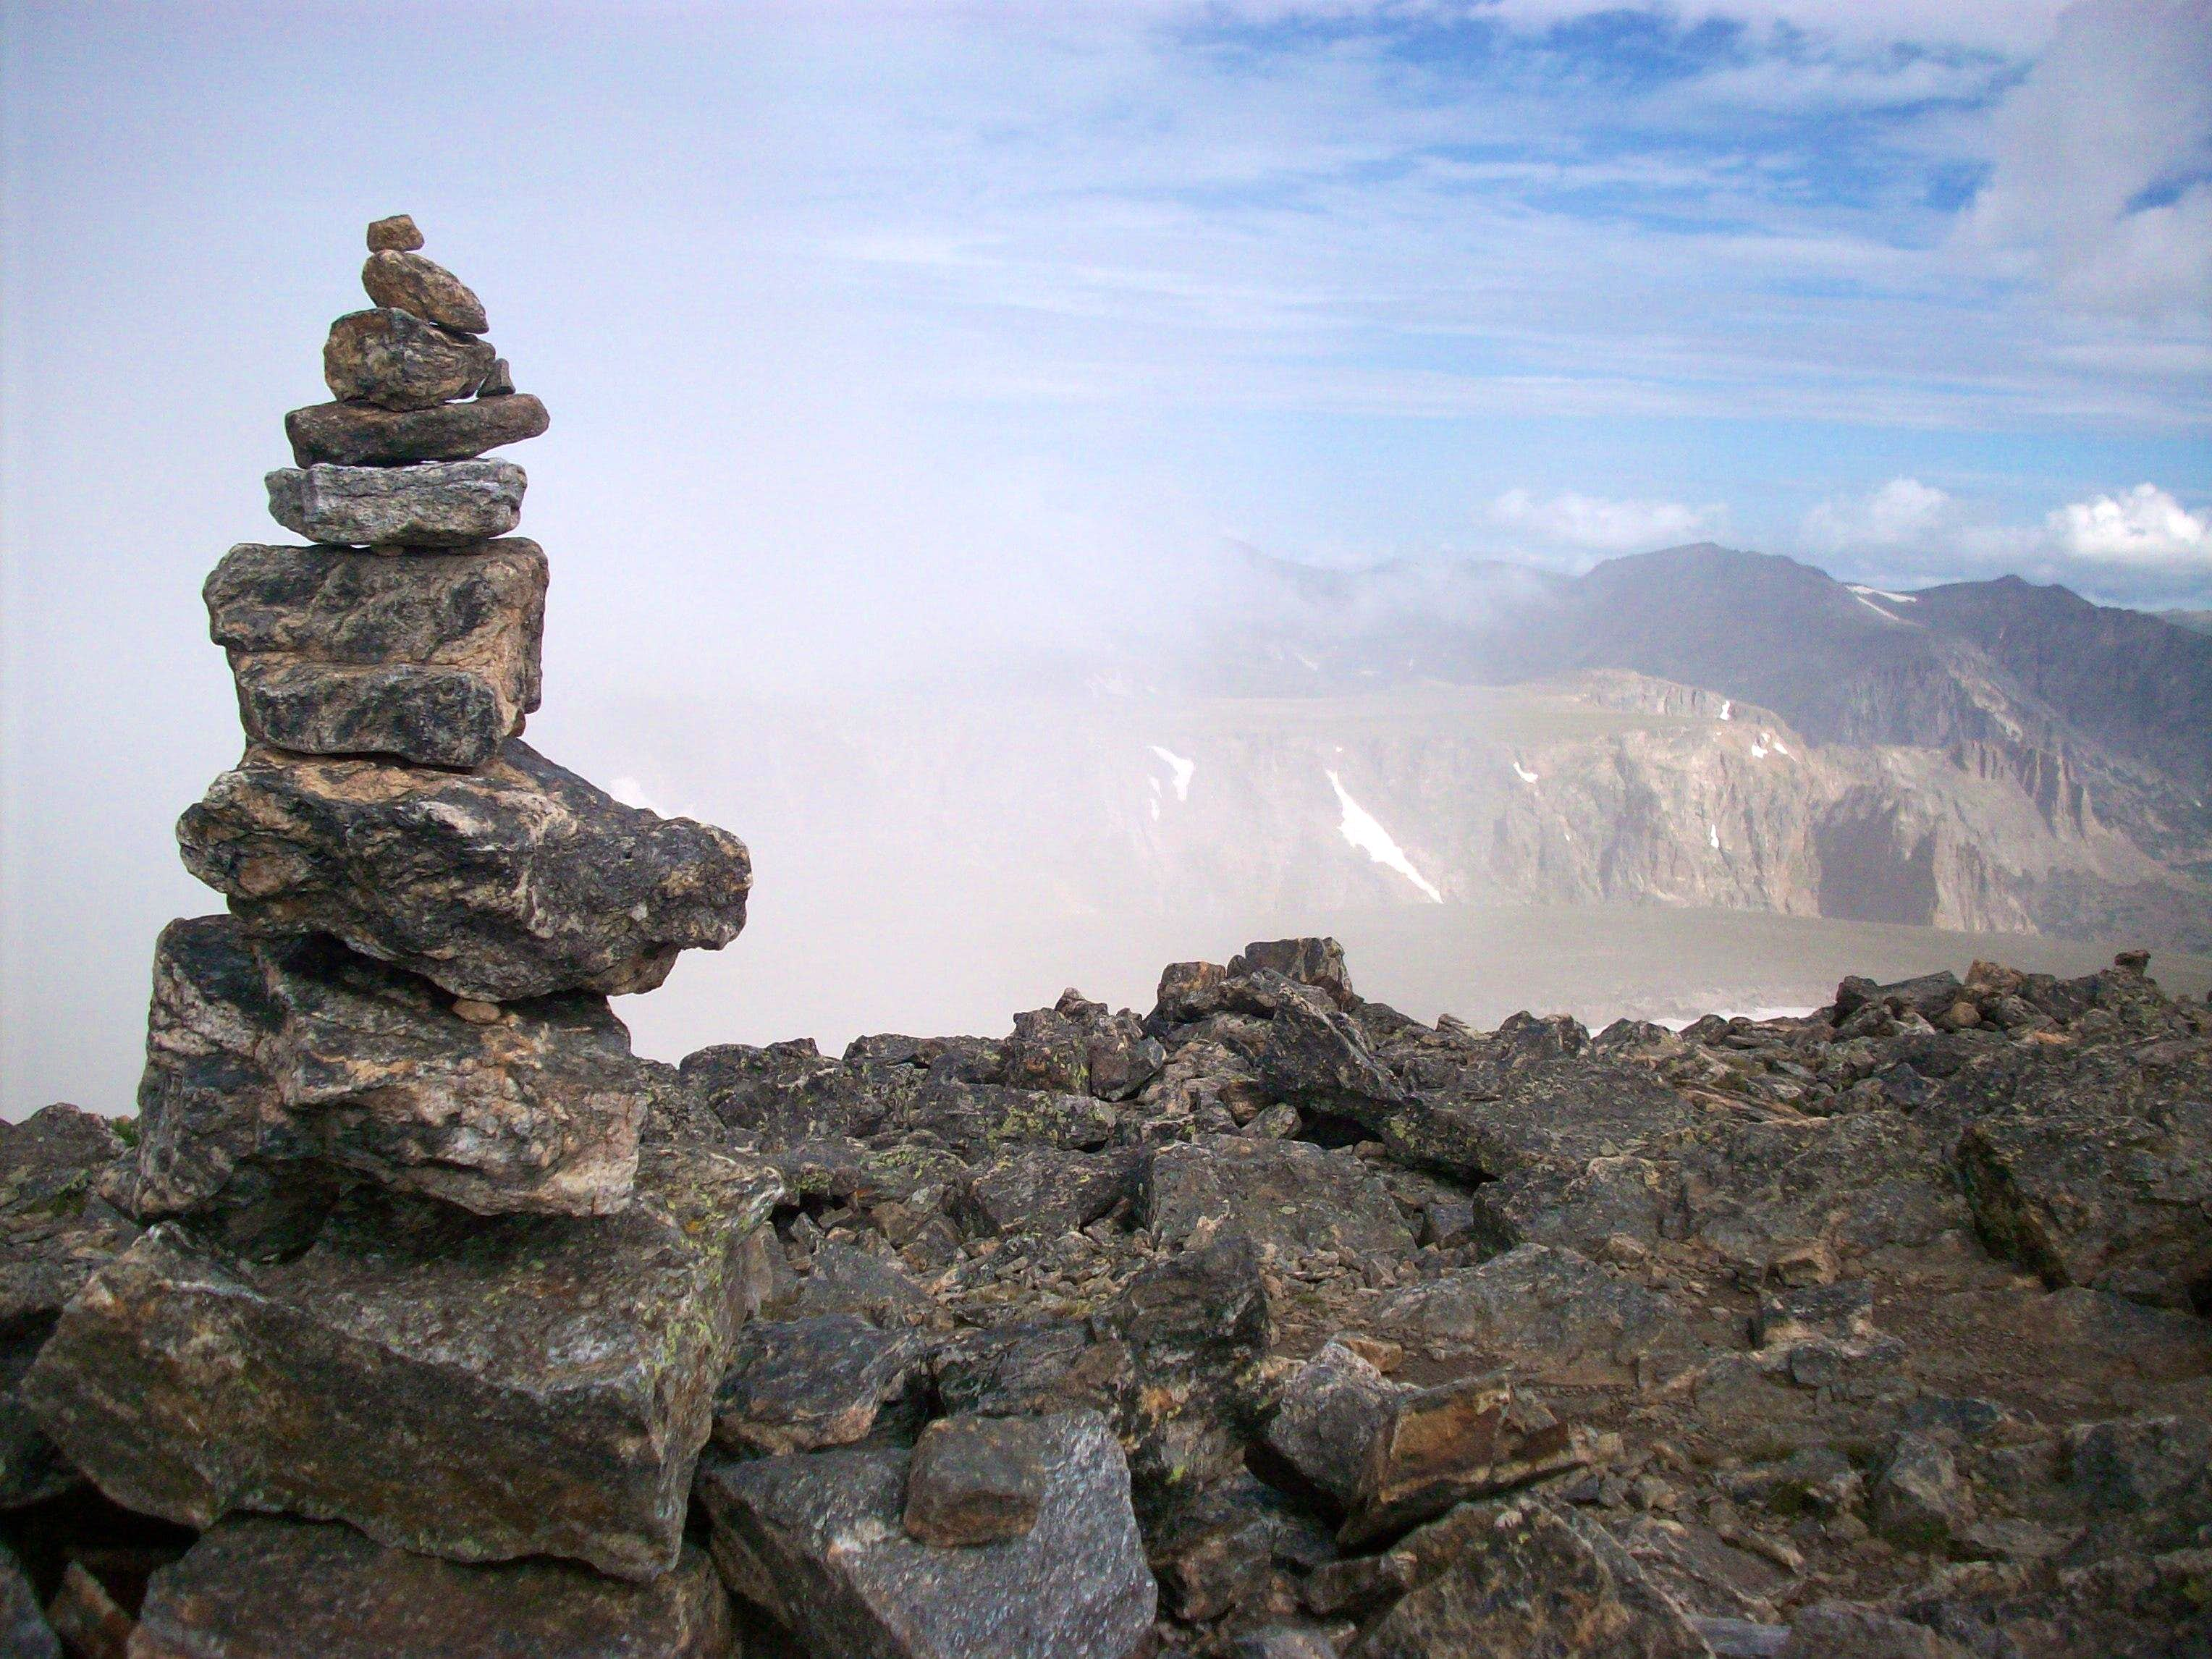 Building a useful cairn